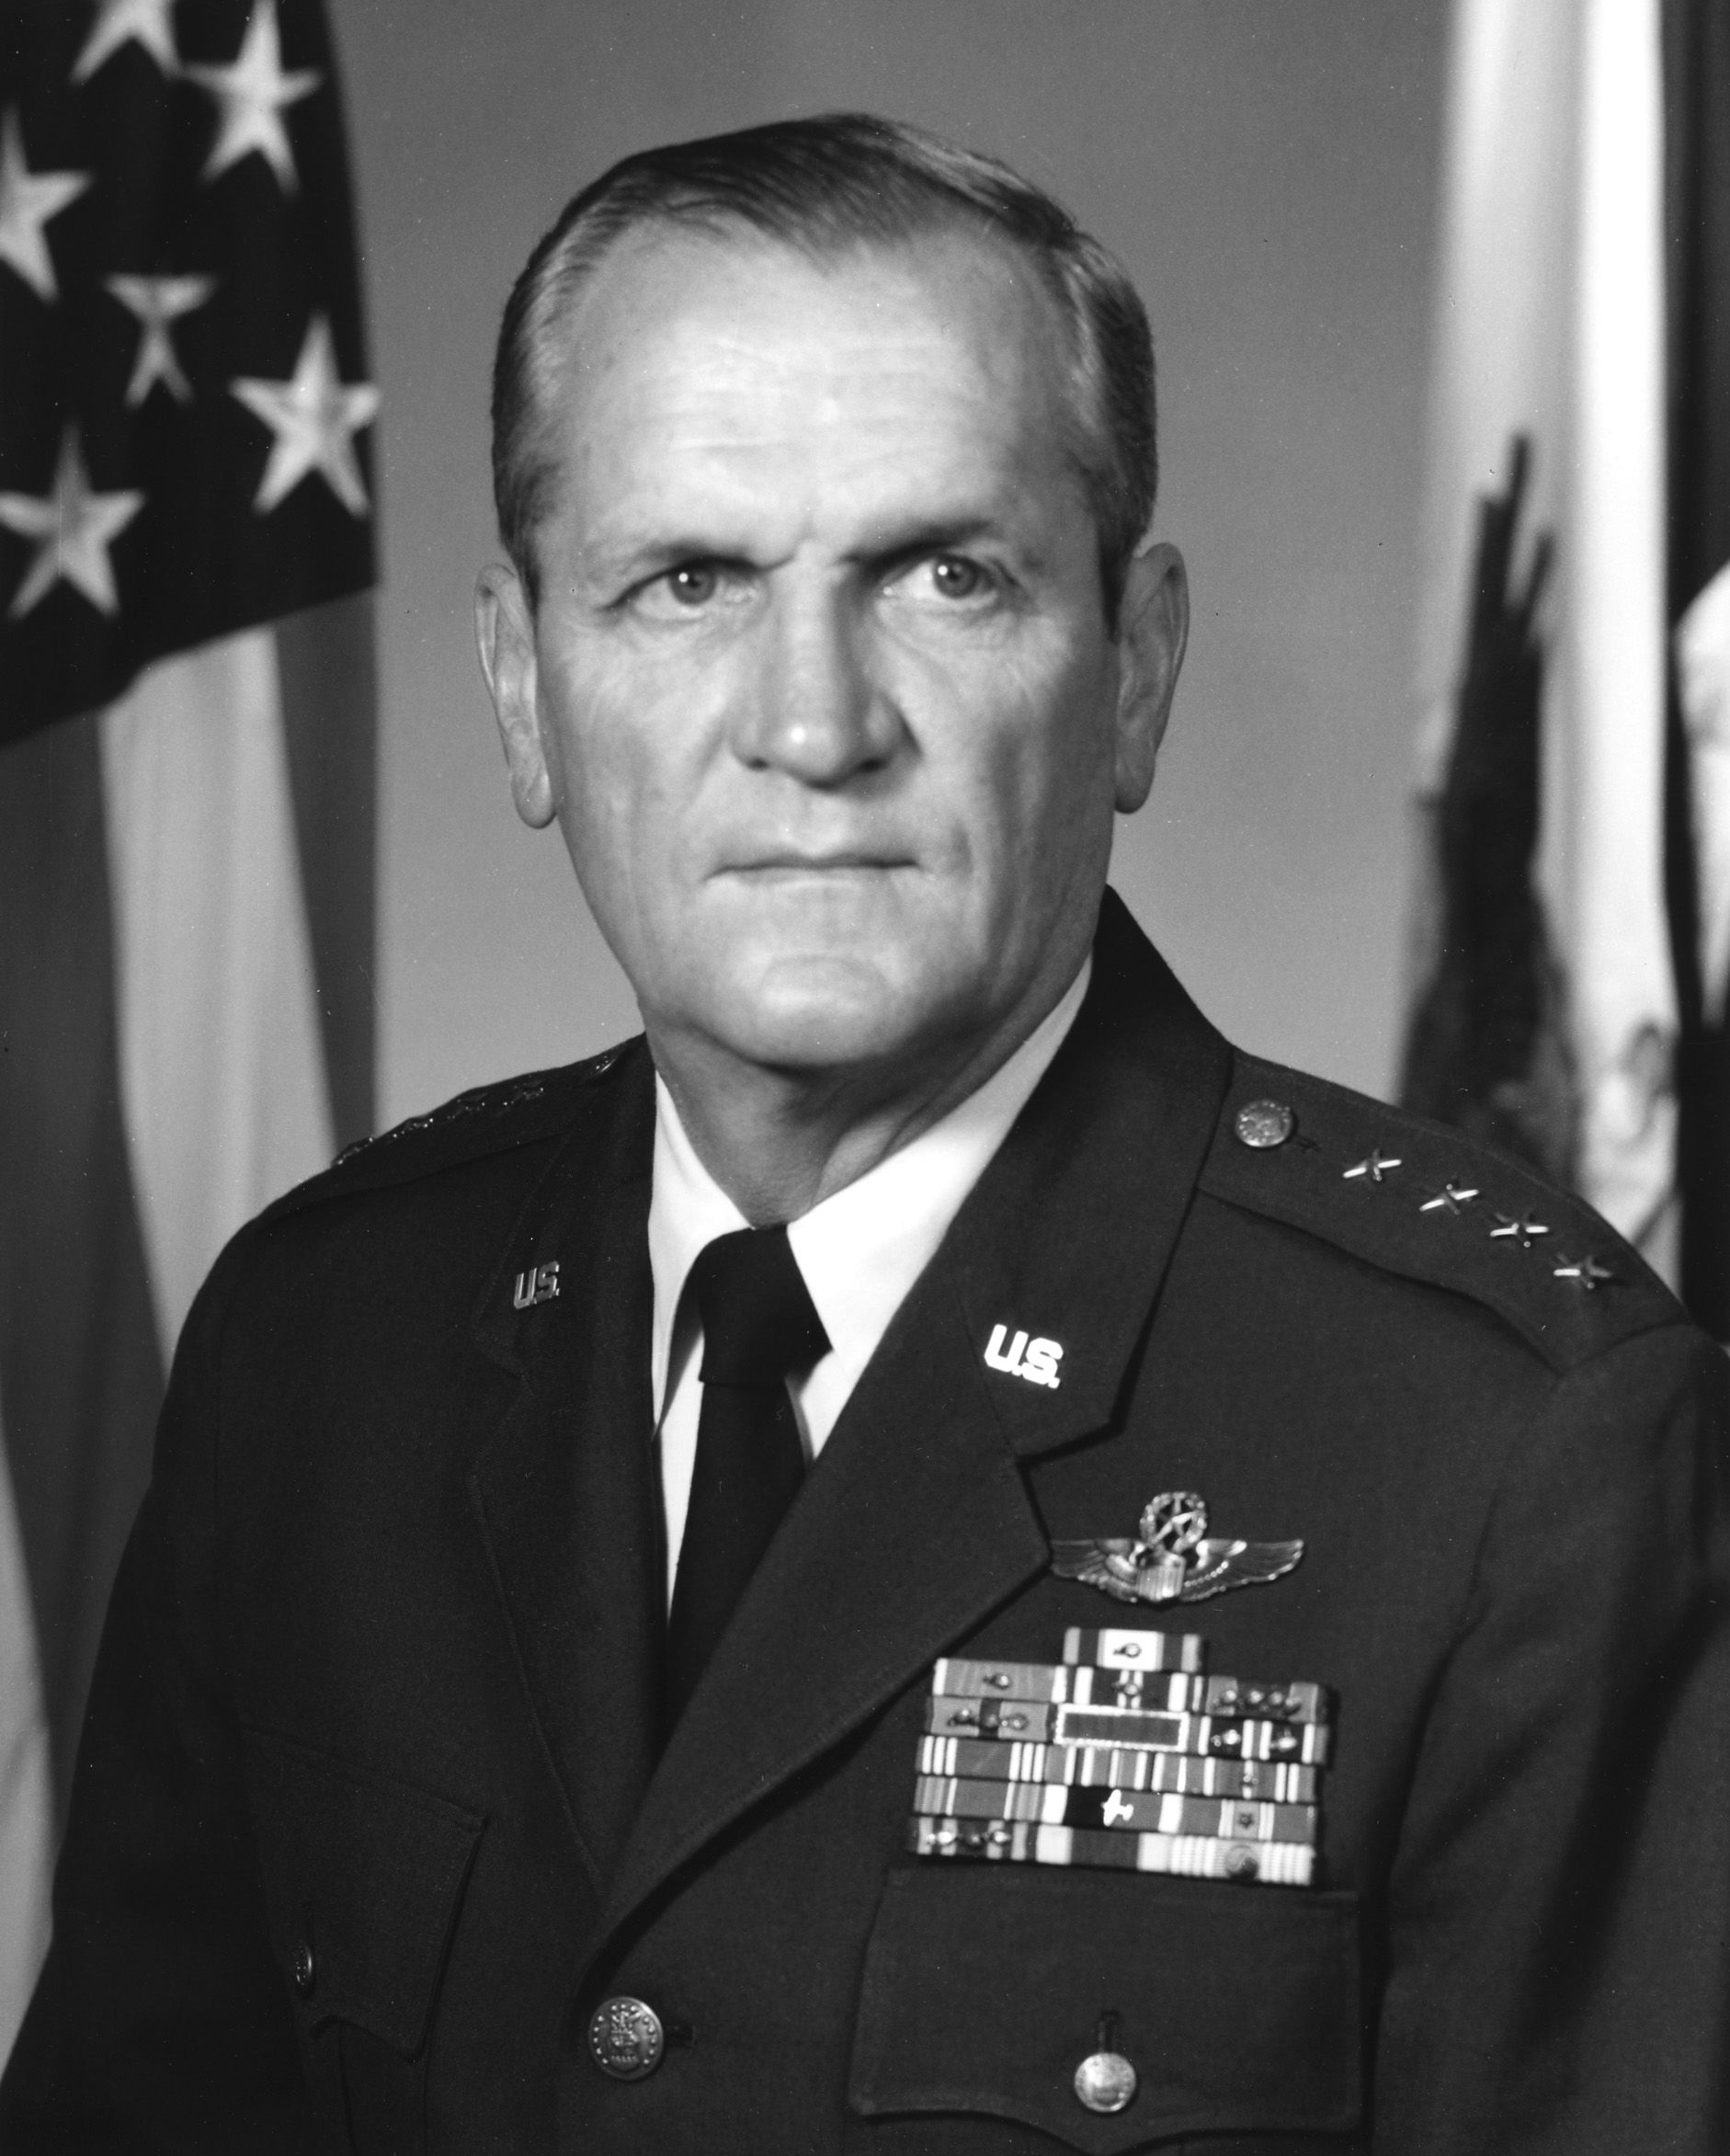 Photo of James A. Hill: United States Air Force general